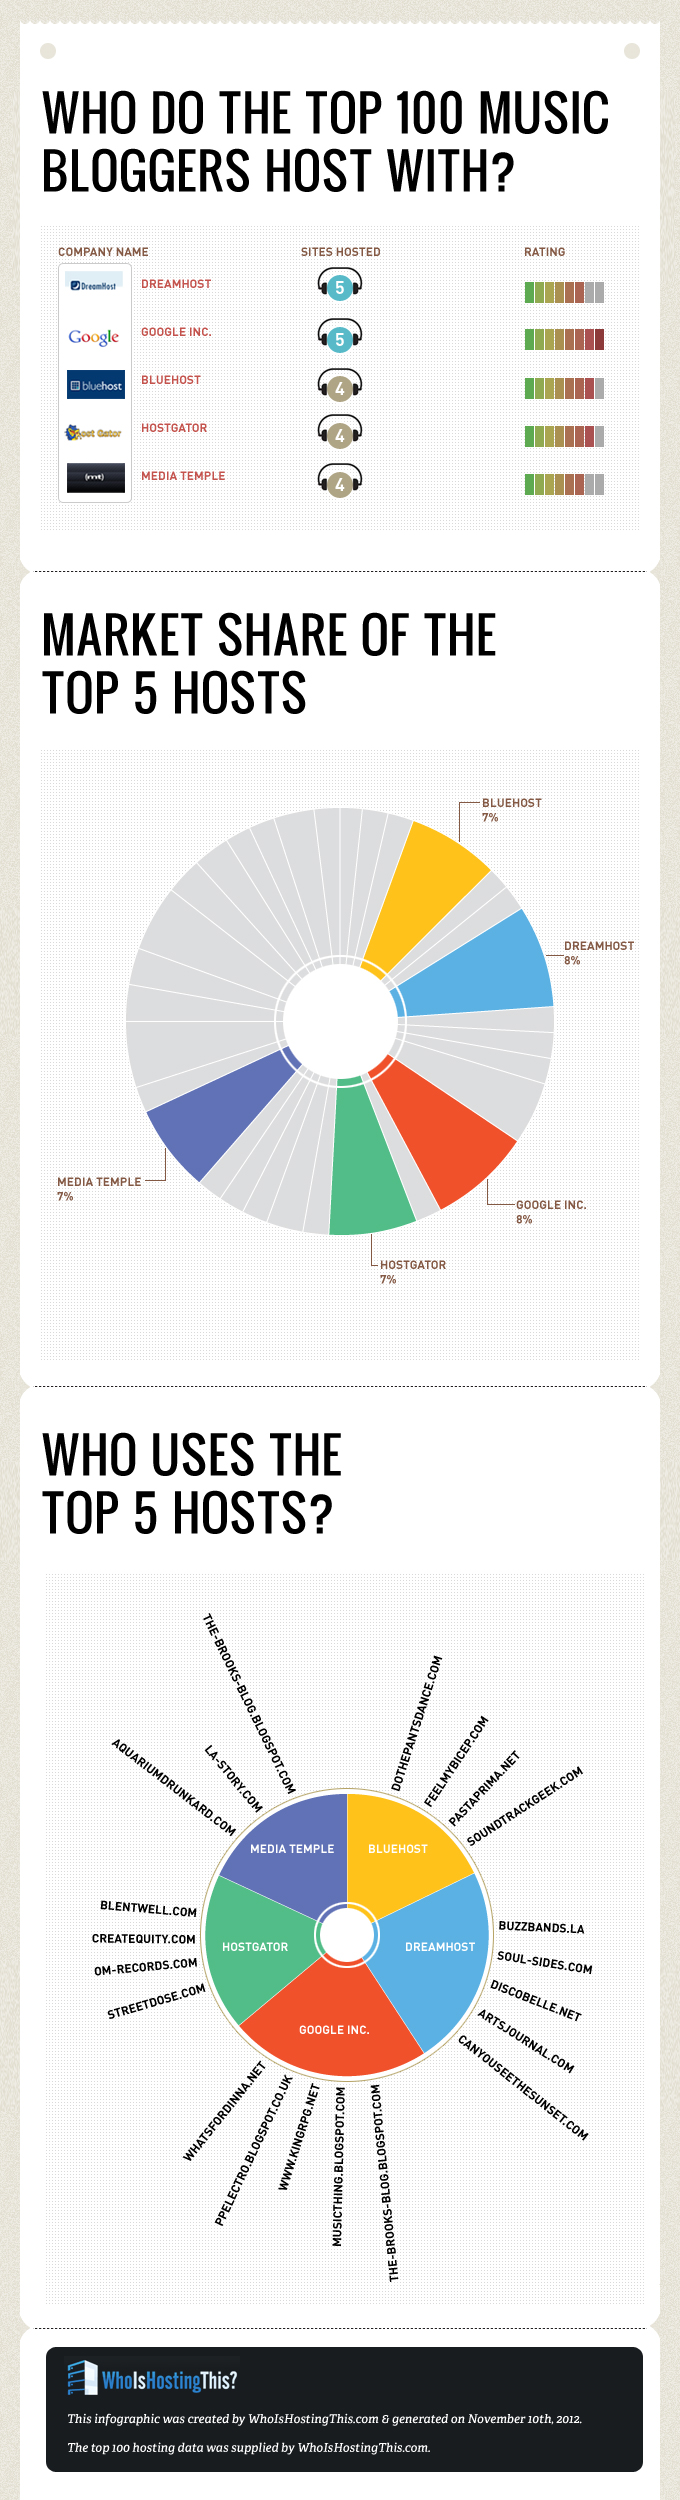 Top Host Sites for Music Bloggers